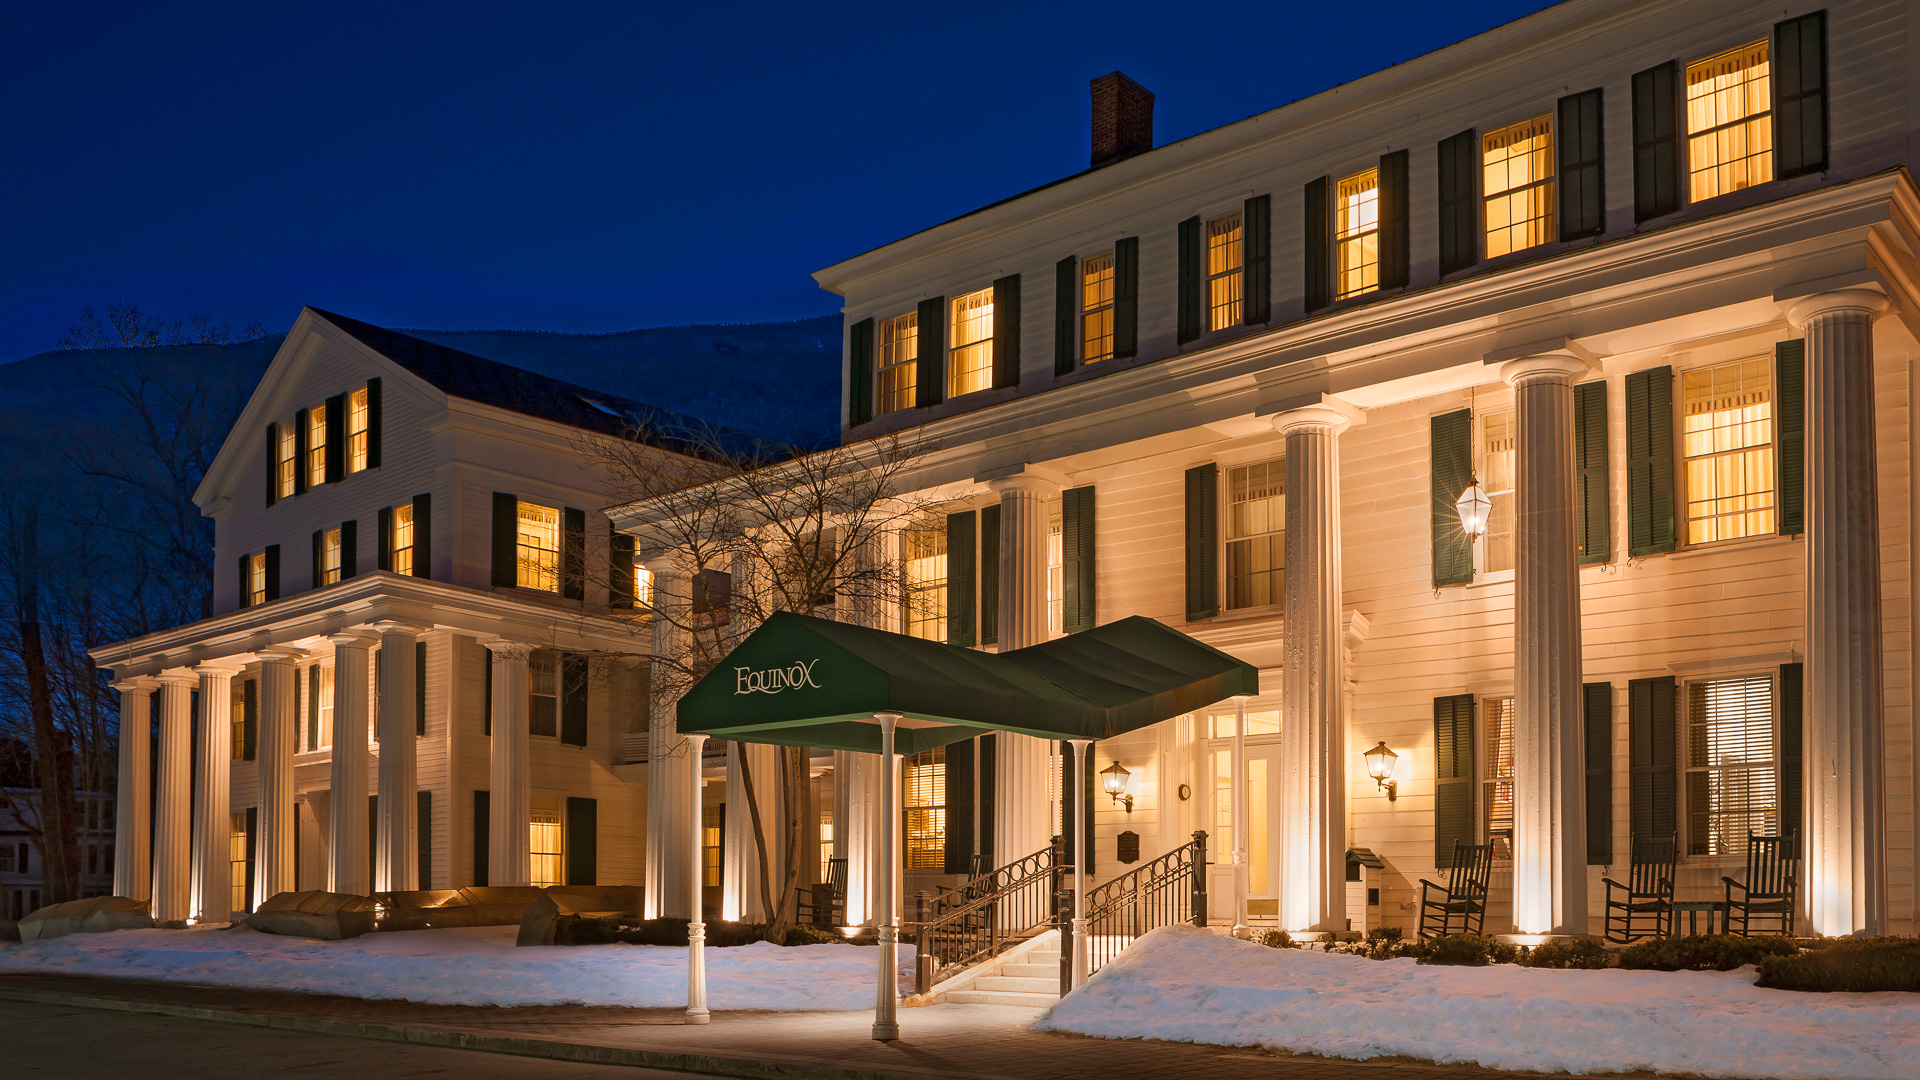 The Equinox hotel in Manchester Vermont